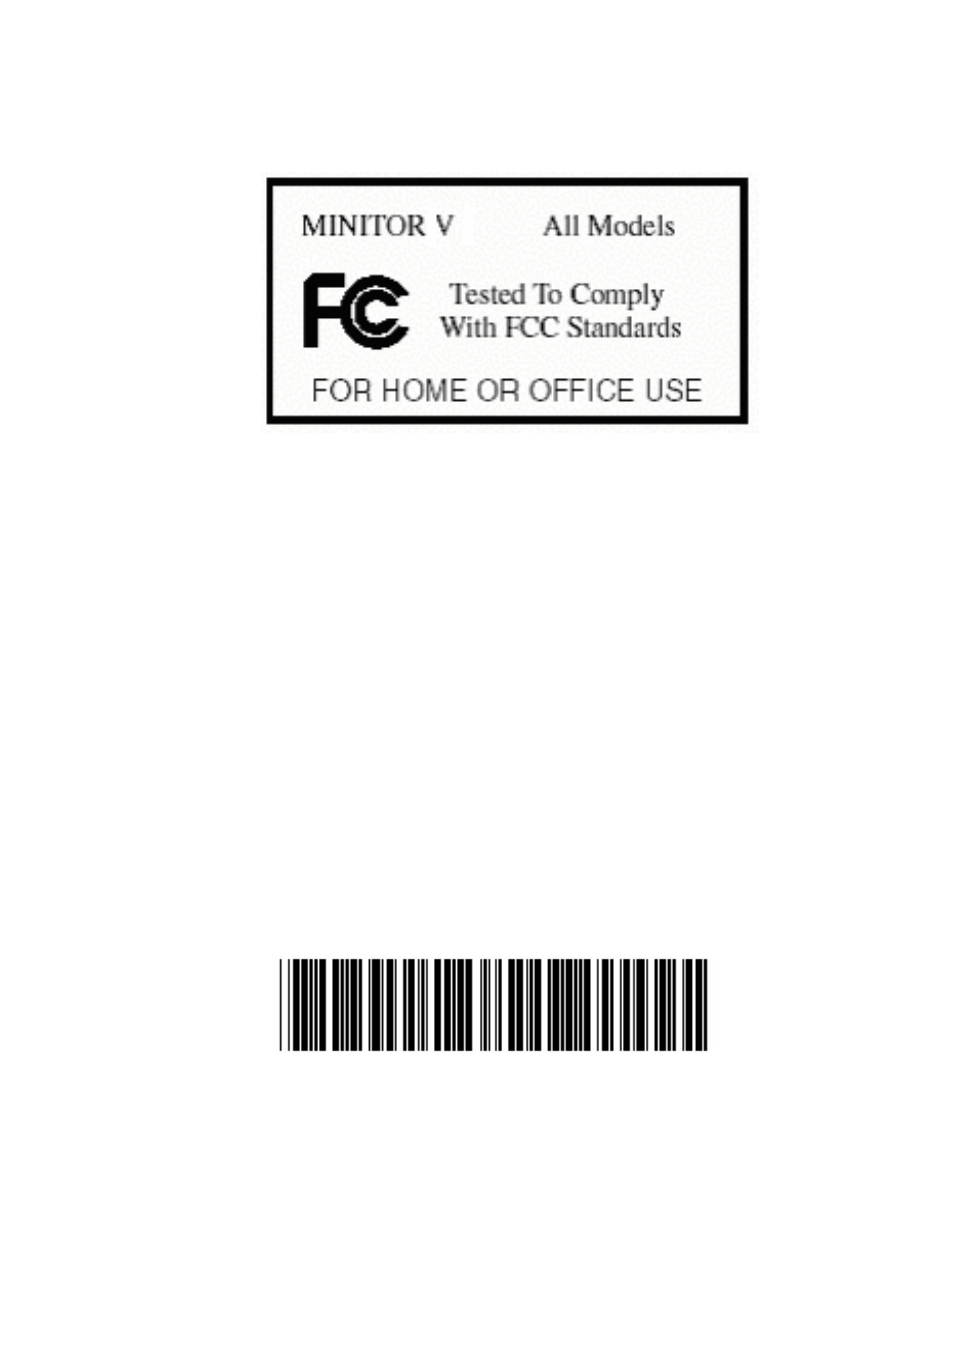 motorola minitor v user manual page 17 17 rh manualsdir com Minitor V Accessories Minitor V Programming